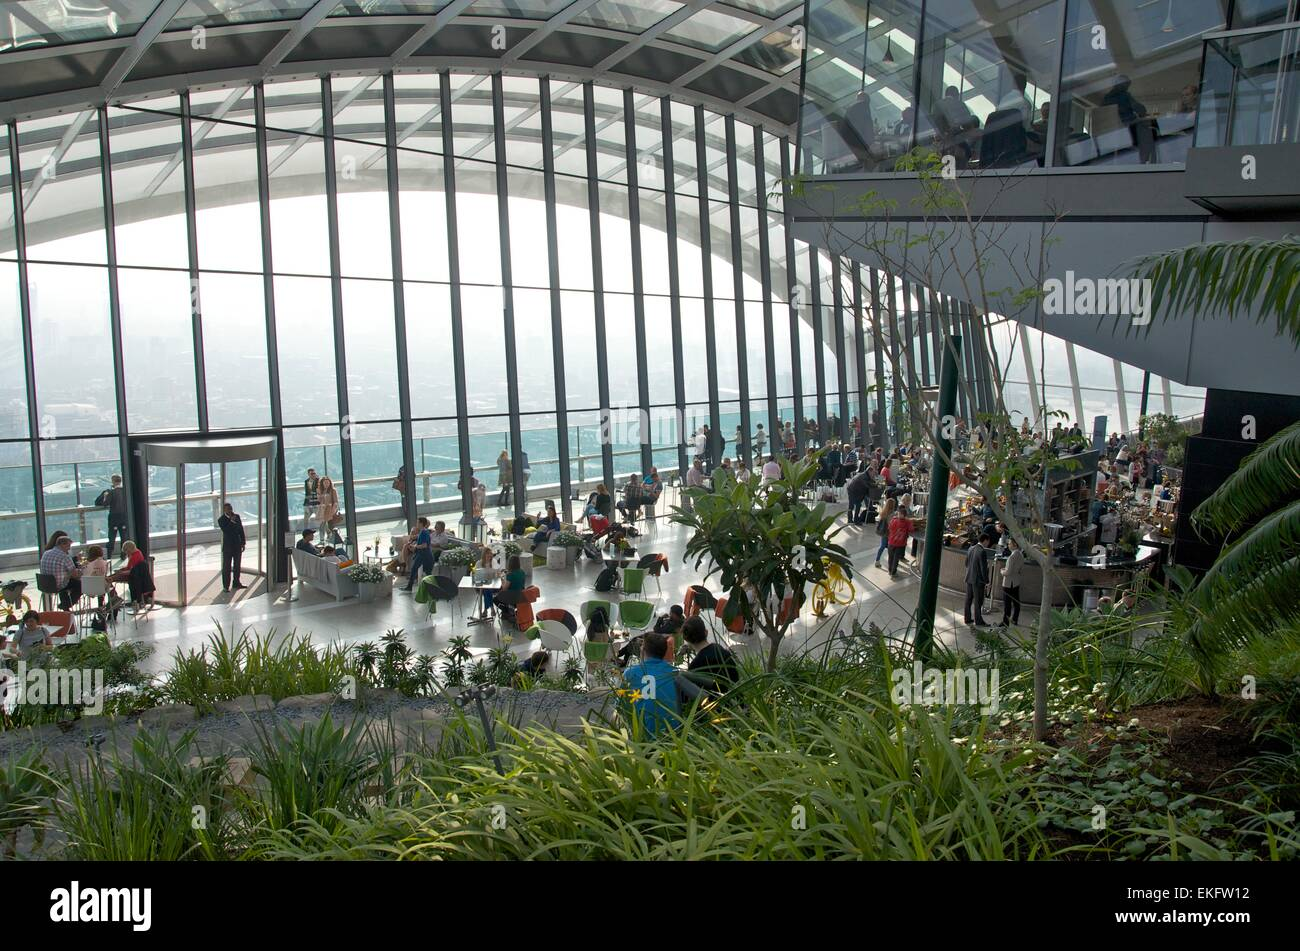 The Sky Garden at the top of 20 Fenchurch Street, City of London, London, England, UK - Stock Image